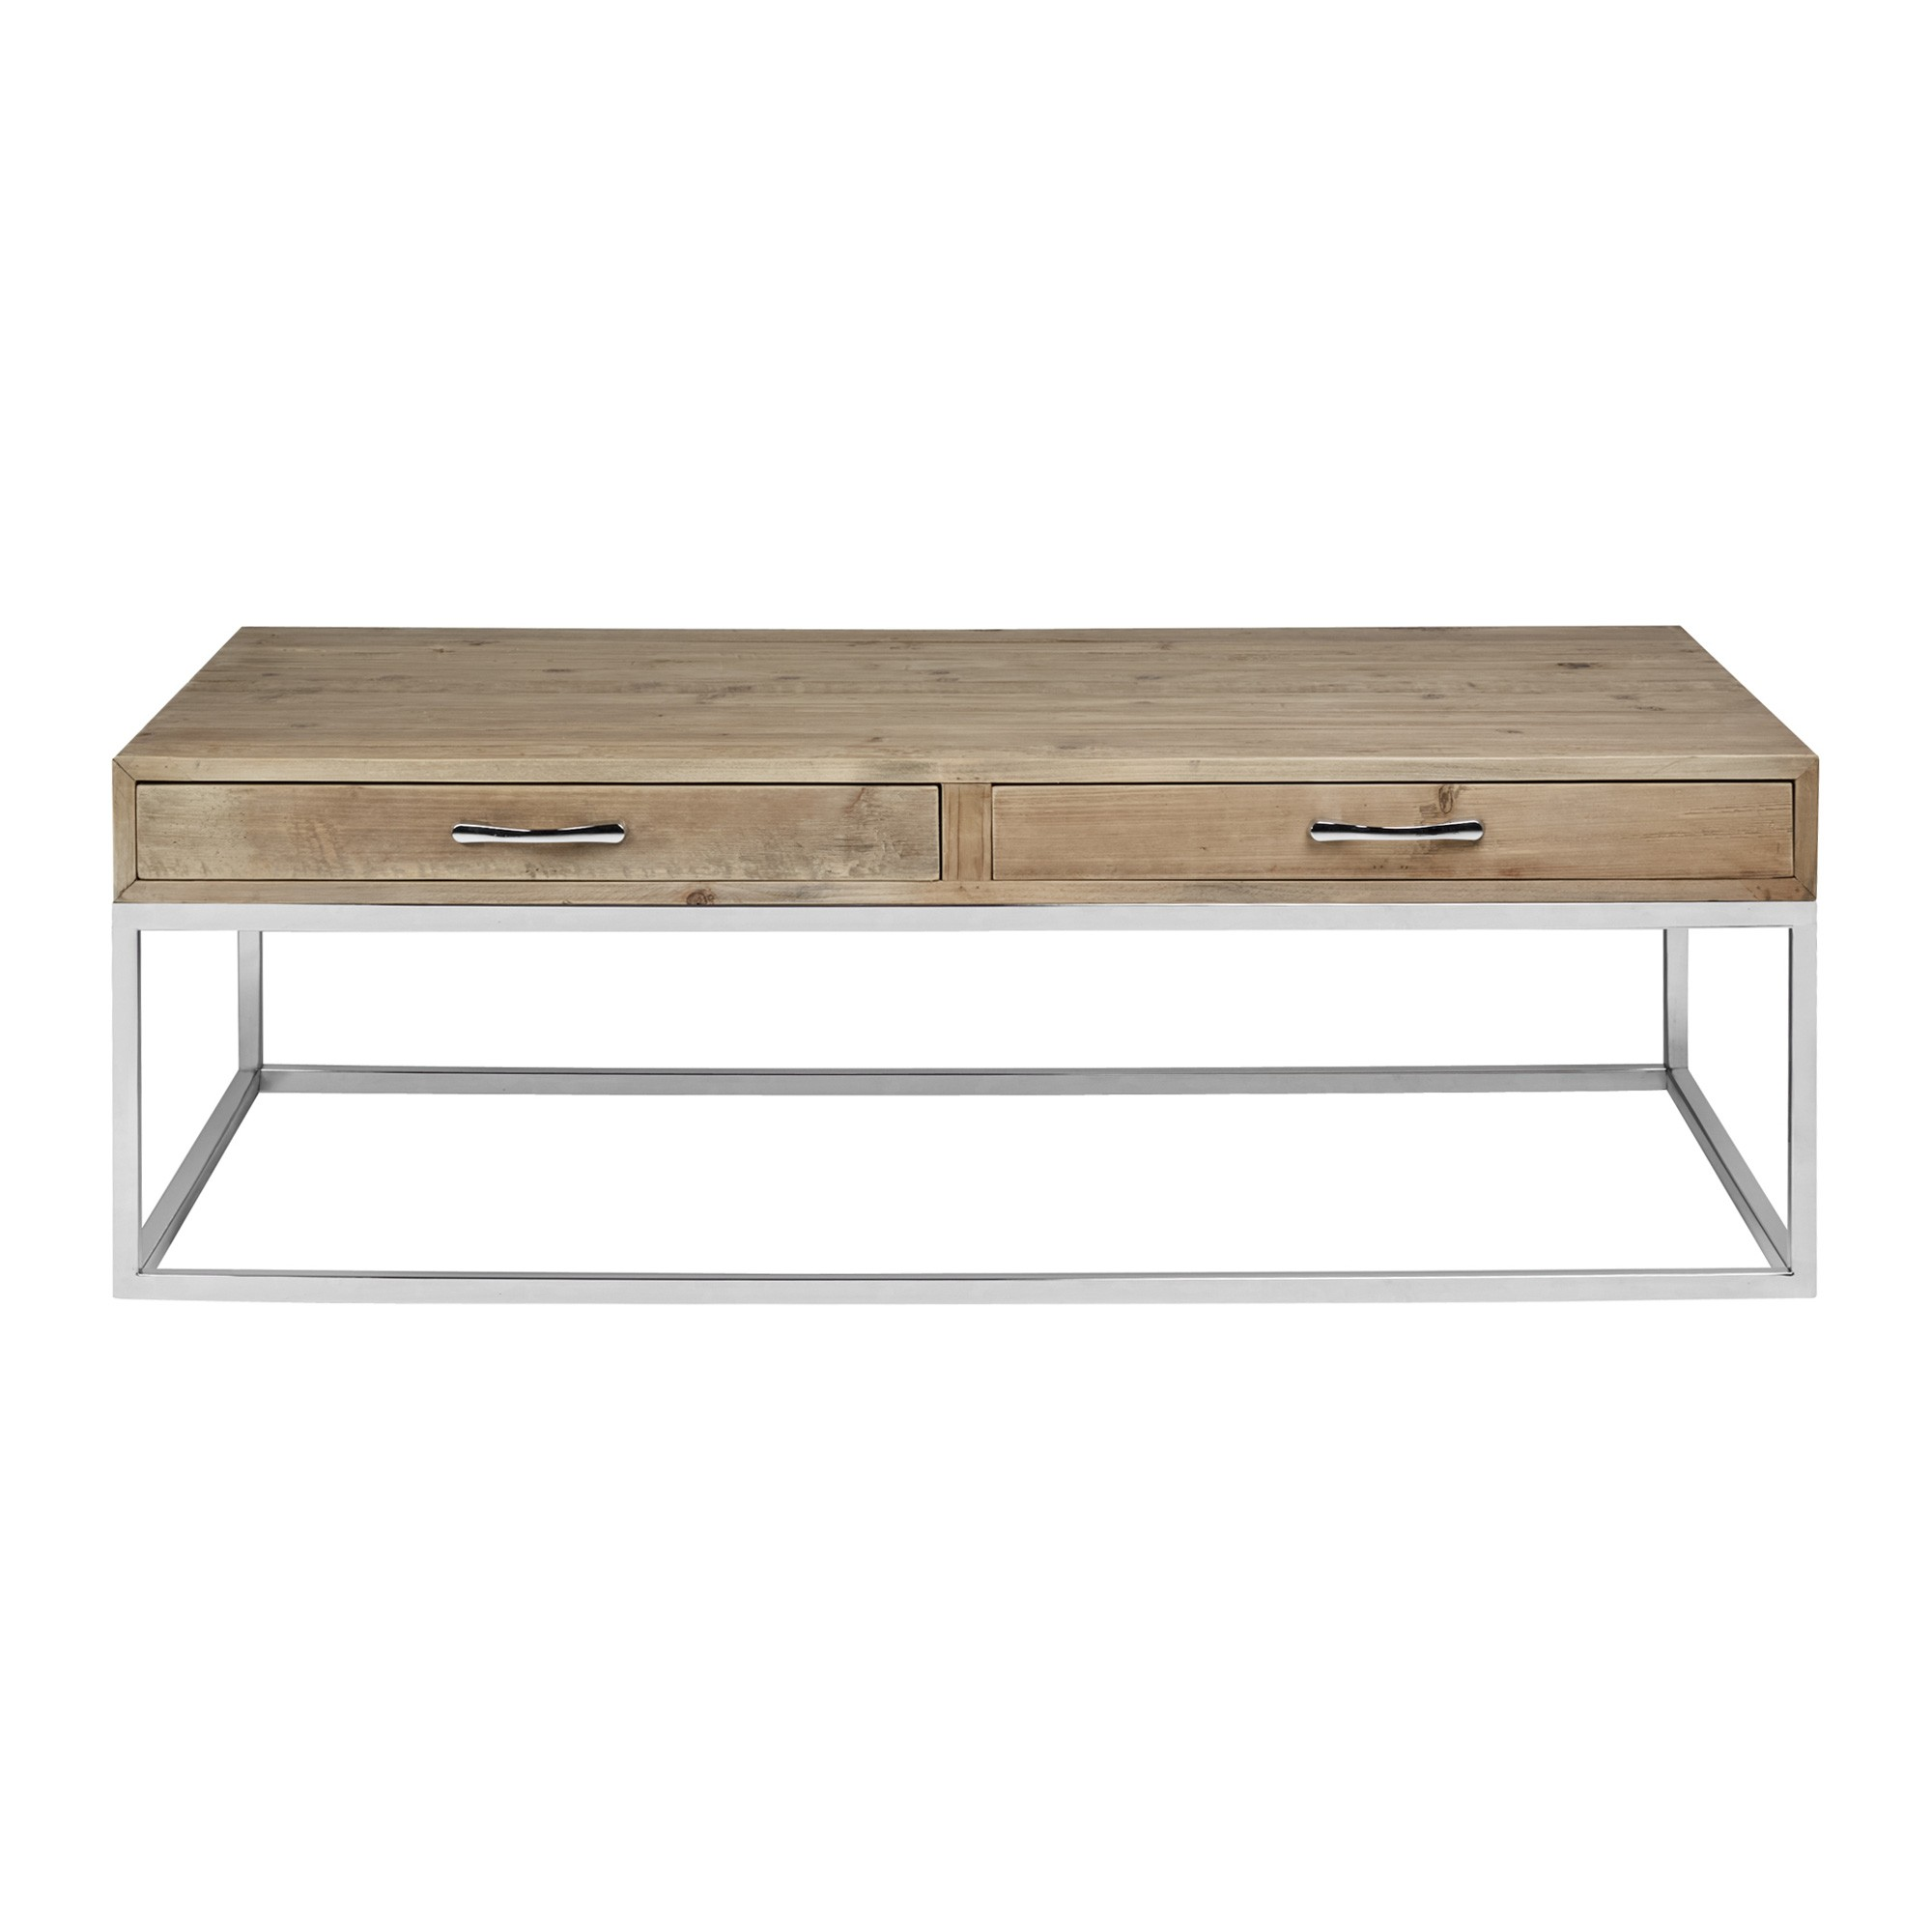 Laurence Recycled Pine Timber & Stainless Steel Coffee Table, 140cm